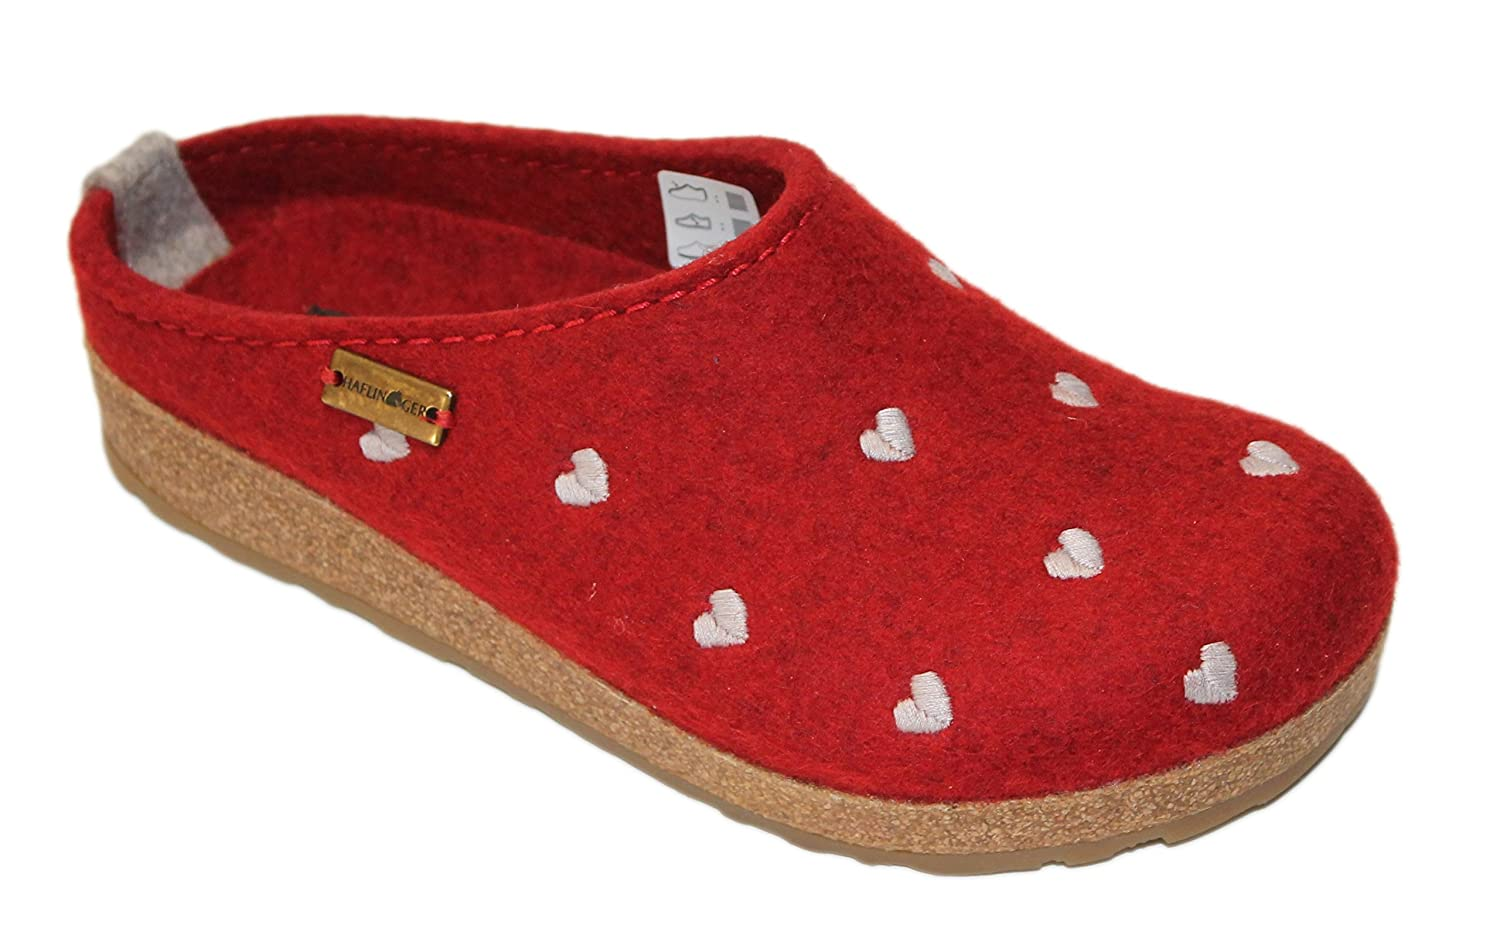 42 Haflinger Womens Grizzly Cuoricino Red